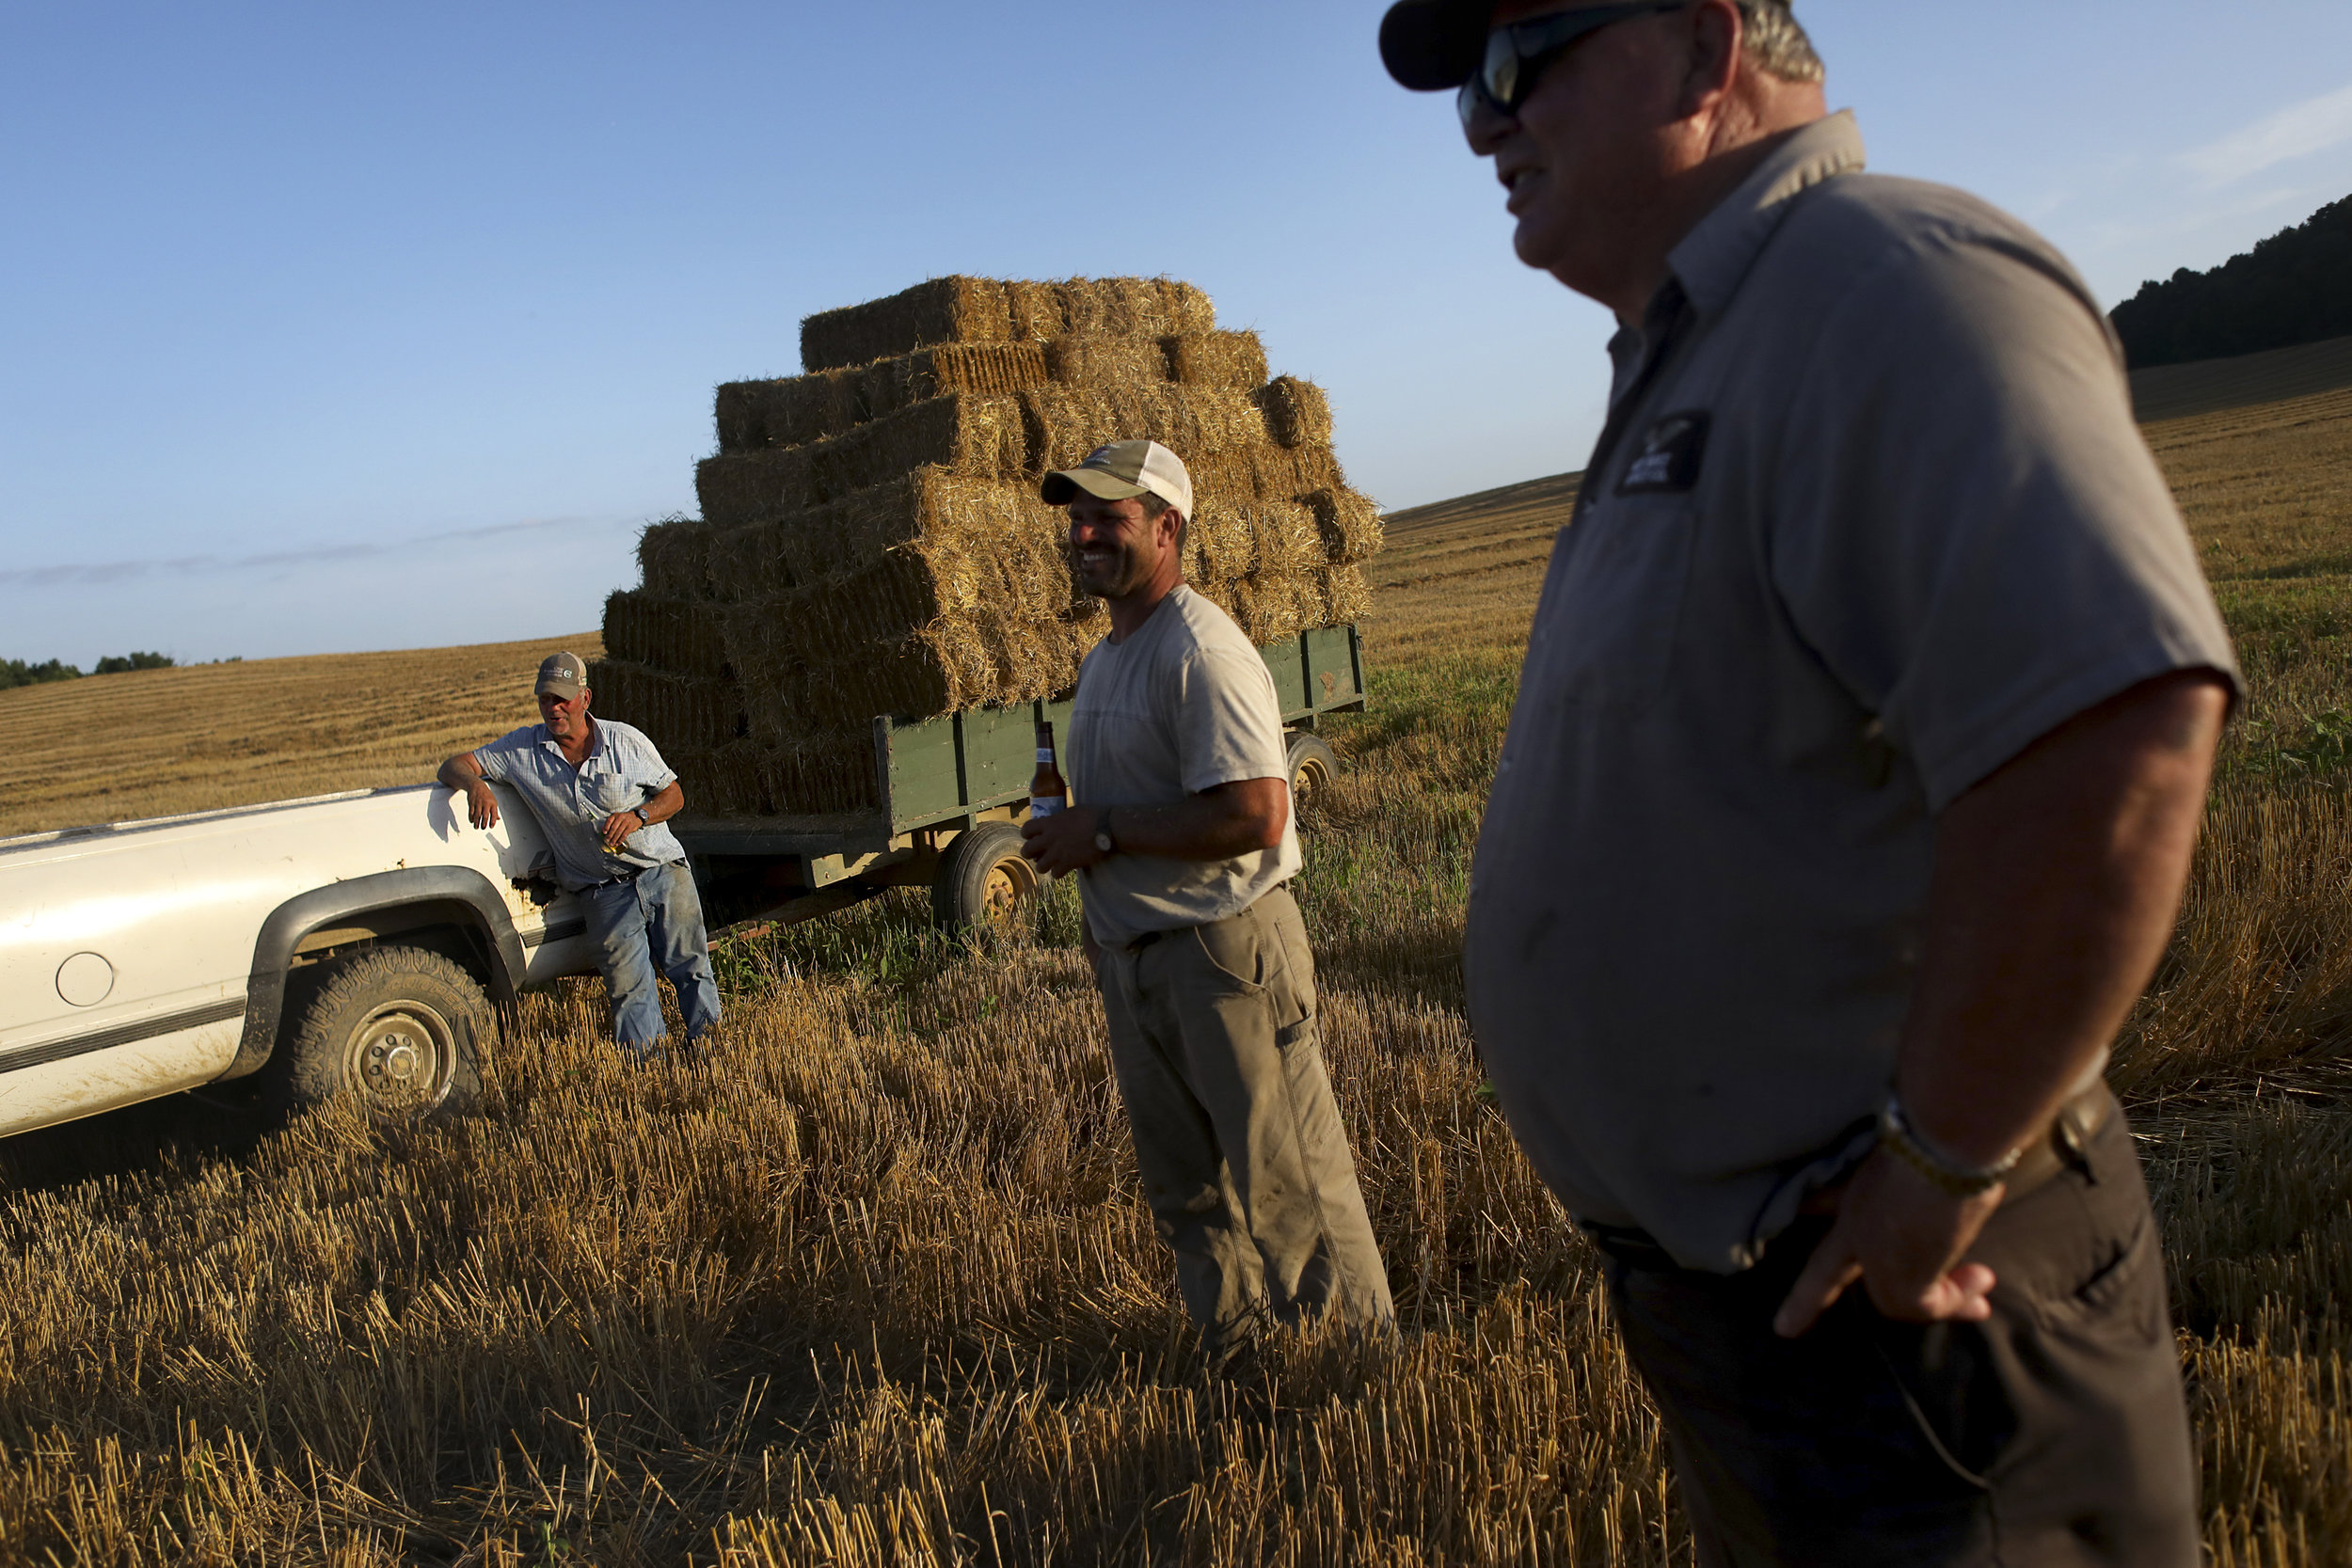 Rich Vollmer, left, Chad Merkley, and Don Schroering, all of Jasper, relaxed with their group of workers after baling, stacking, and hauling 2700 square straw bales from 50 acres of land in Jasper, Ind. The group usually ends their work day with a cold beer, and on Tuesday, June 19, 2018, also washed down bologna sandwiches. Vollmer and his two brothers own Vollmer Farms, which has been in his family for 6 generations.